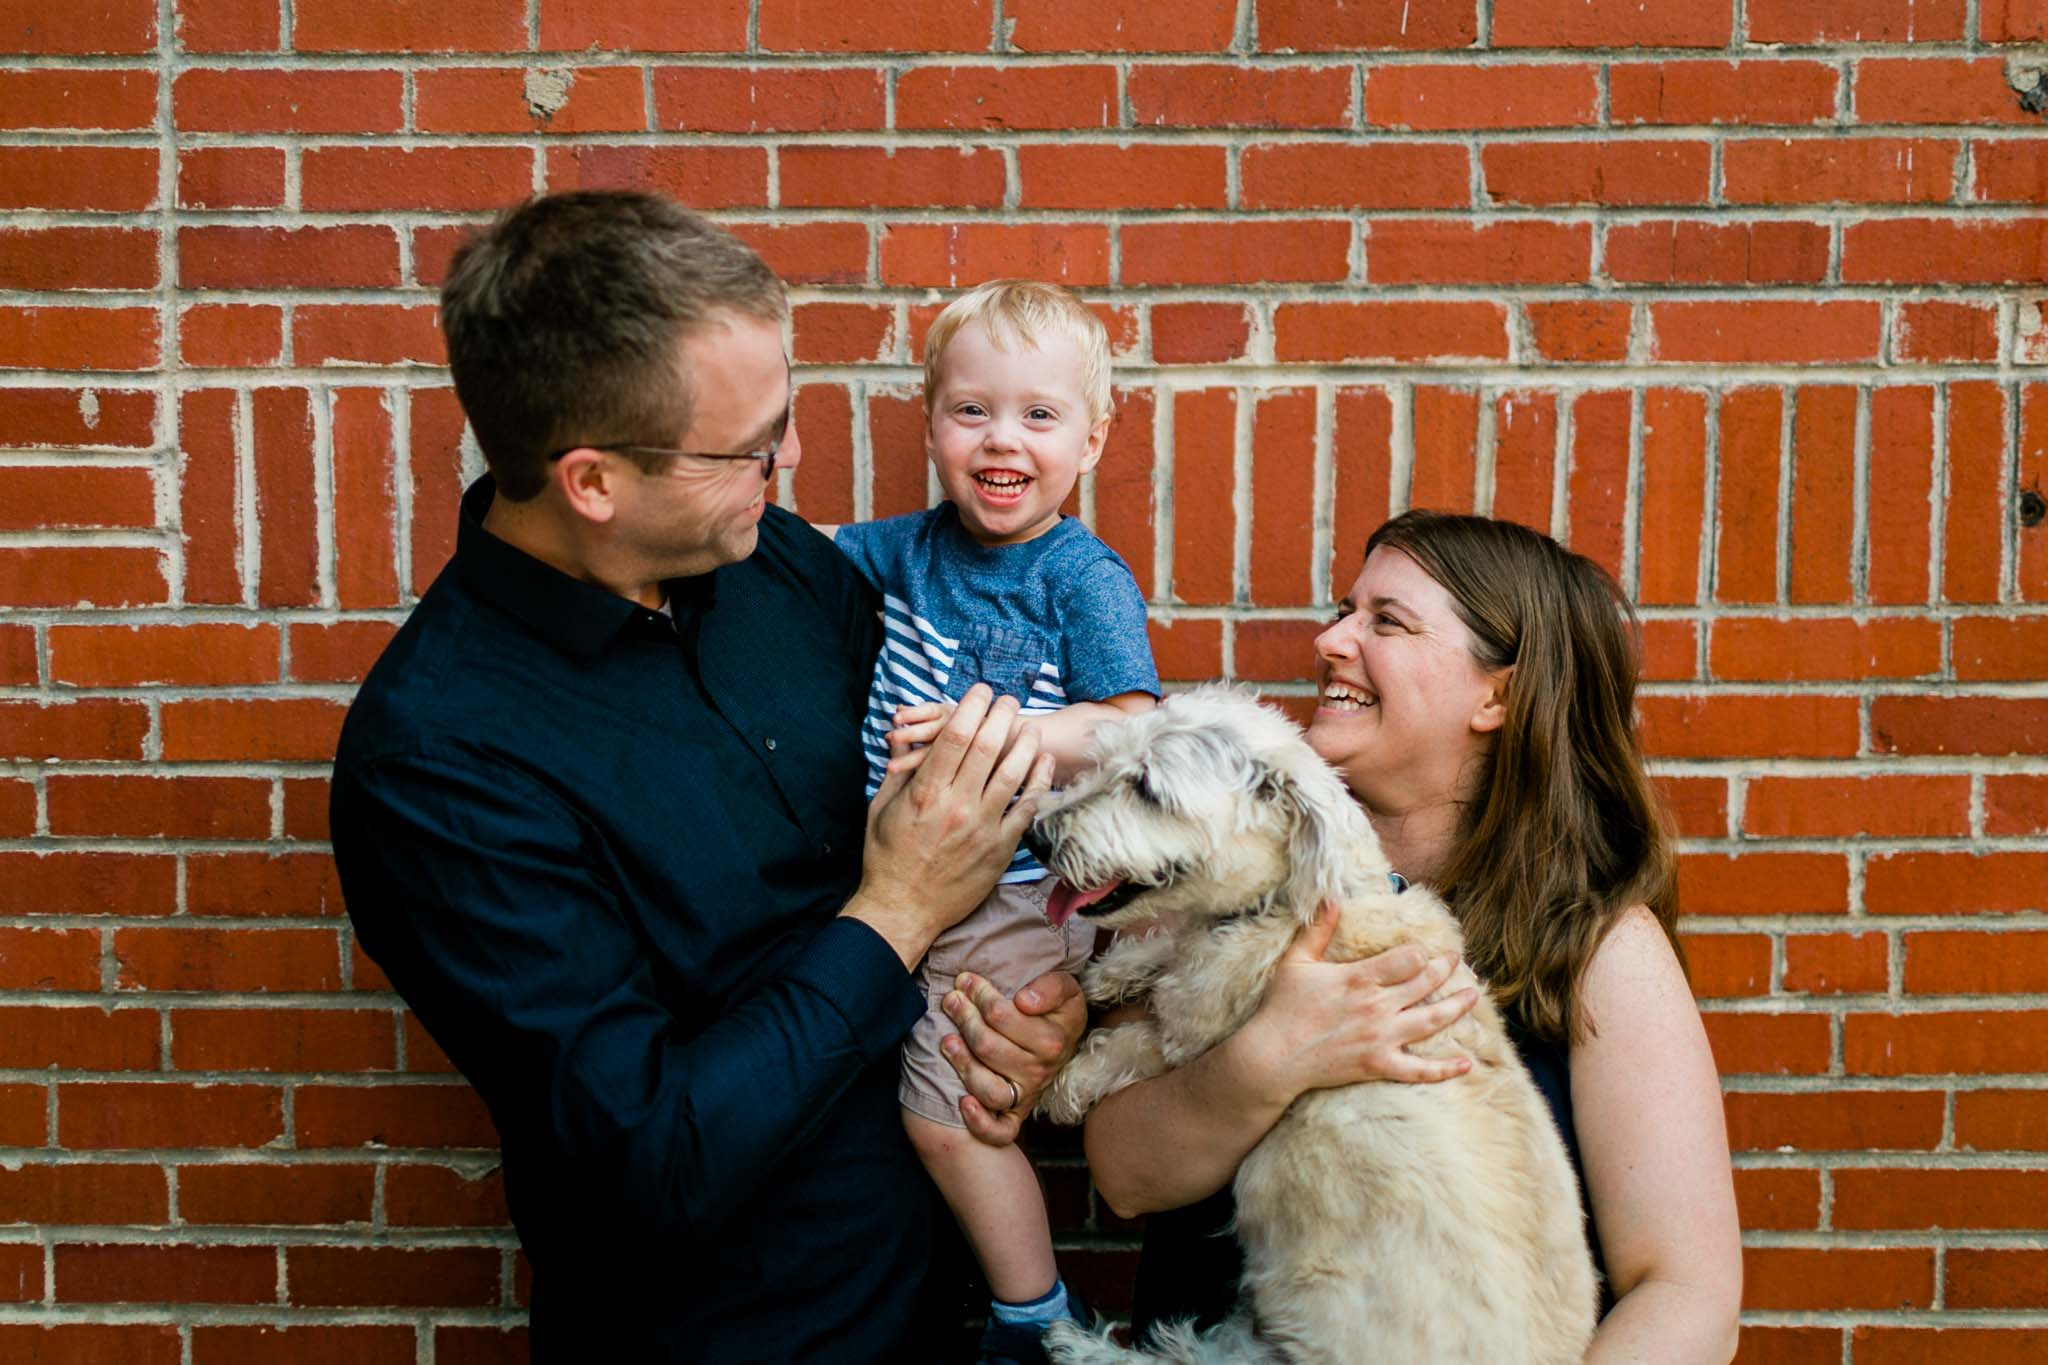 Family laughing together with brick background | Durham Photographer | By G. Lin Photography